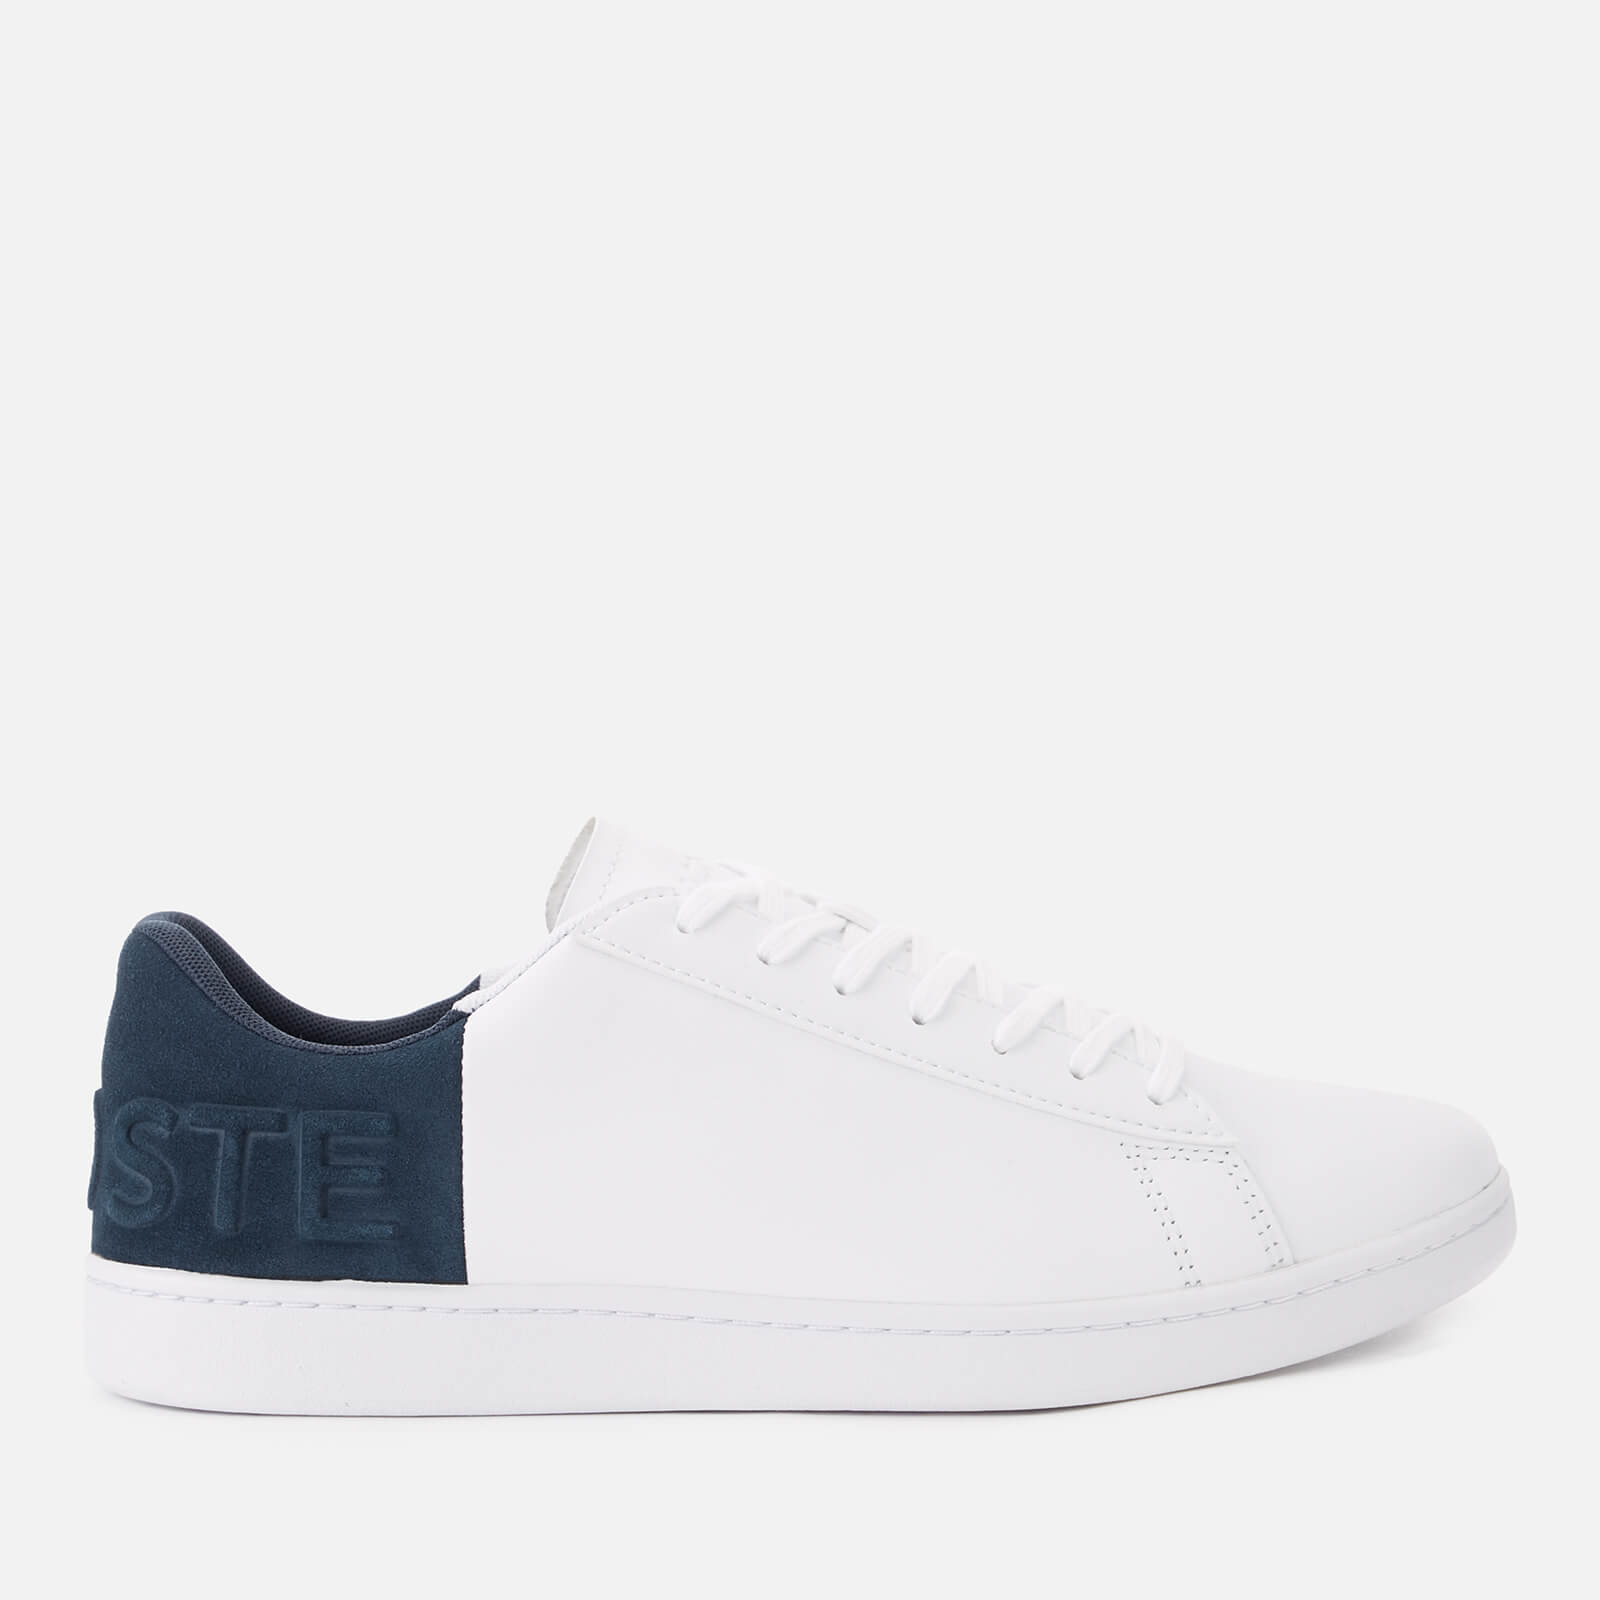 7a2007ba4c Lacoste Men's Carnaby Evo 318 6 Leather/Suede Trainers - White/Navy